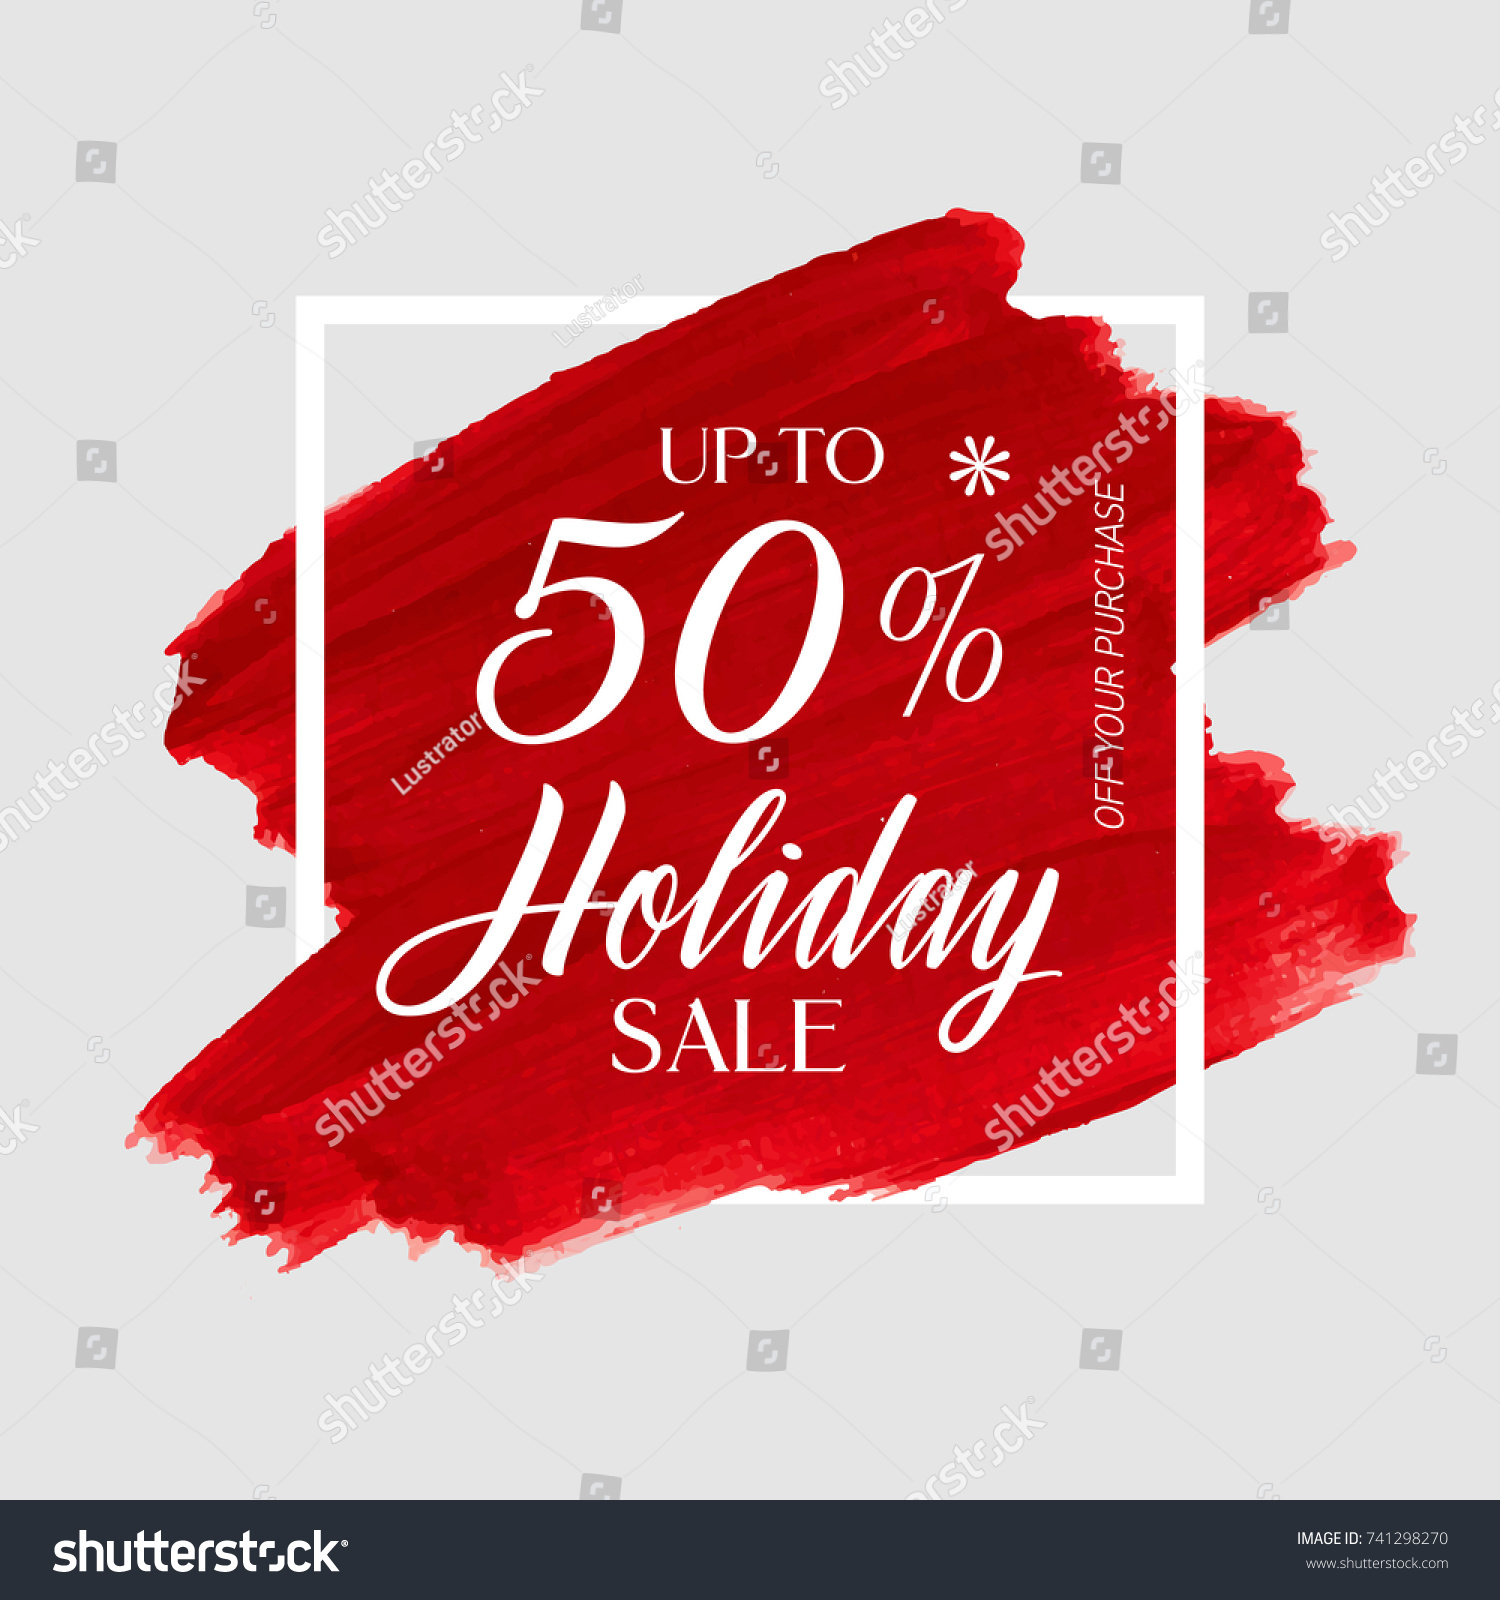 Holiday Sale Up To 50 Sign Over Art Brush Paint Abstract Texture Background Acrylic Stroke